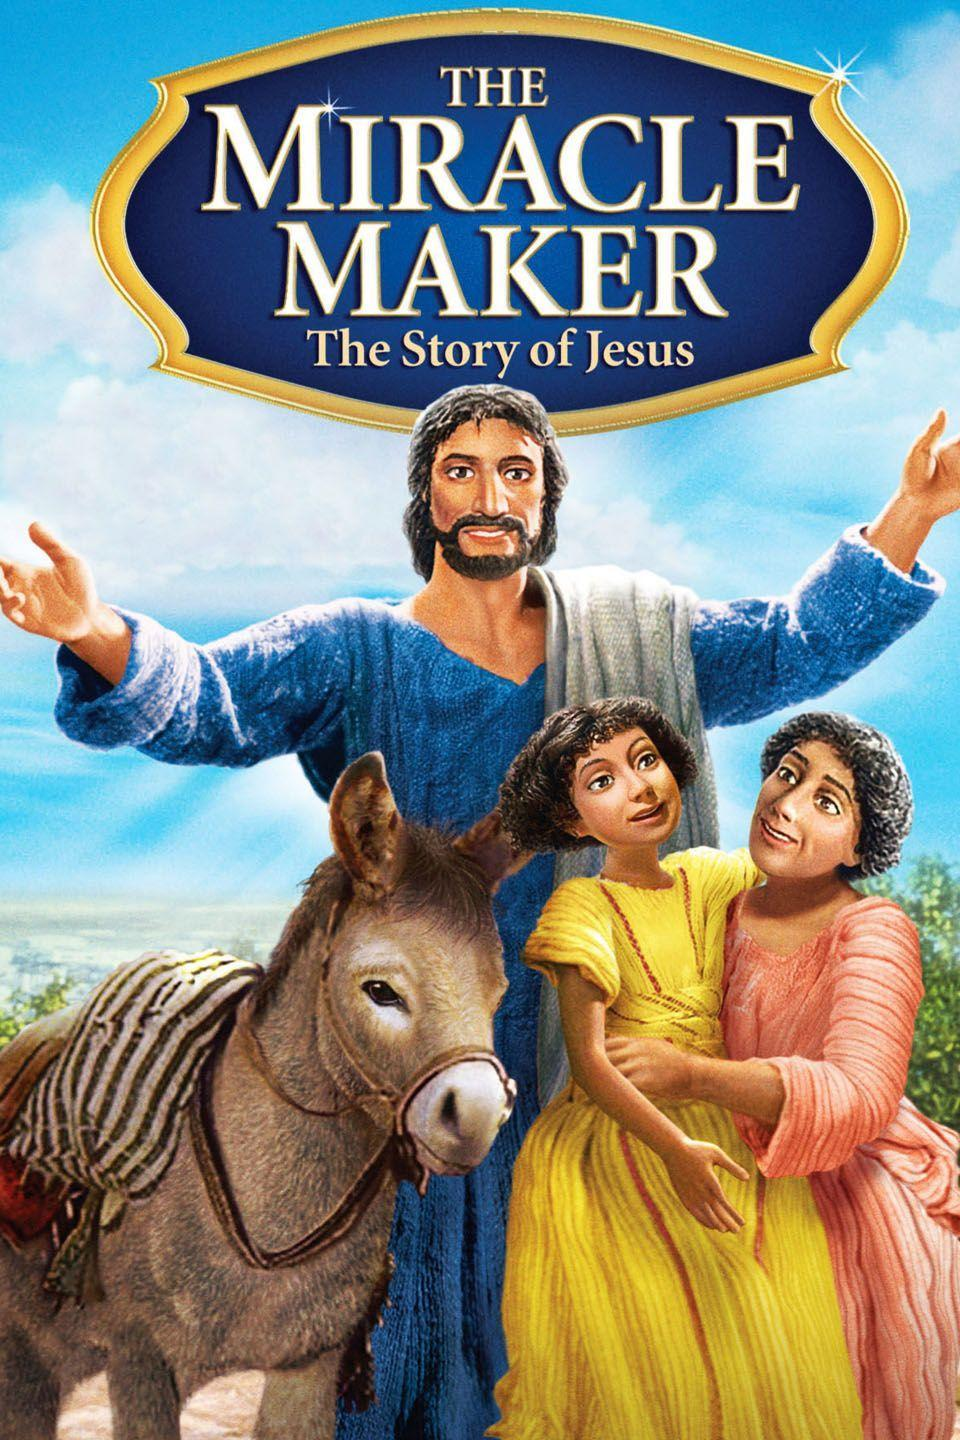 """<p>This stop-motion-animated movie portrays Jesus's many miraculous acts, as seen through the eyes of a terminally ill girl. </p><p><a class=""""link rapid-noclick-resp"""" href=""""https://www.amazon.com/Miracle-Maker-Ralph-Fiennes/dp/B06W56H9ZR?tag=syn-yahoo-20&ascsubtag=%5Bartid%7C10050.g.15928562%5Bsrc%7Cyahoo-us"""" rel=""""nofollow noopener"""" target=""""_blank"""" data-ylk=""""slk:STREAM NOW"""">STREAM NOW</a></p>"""